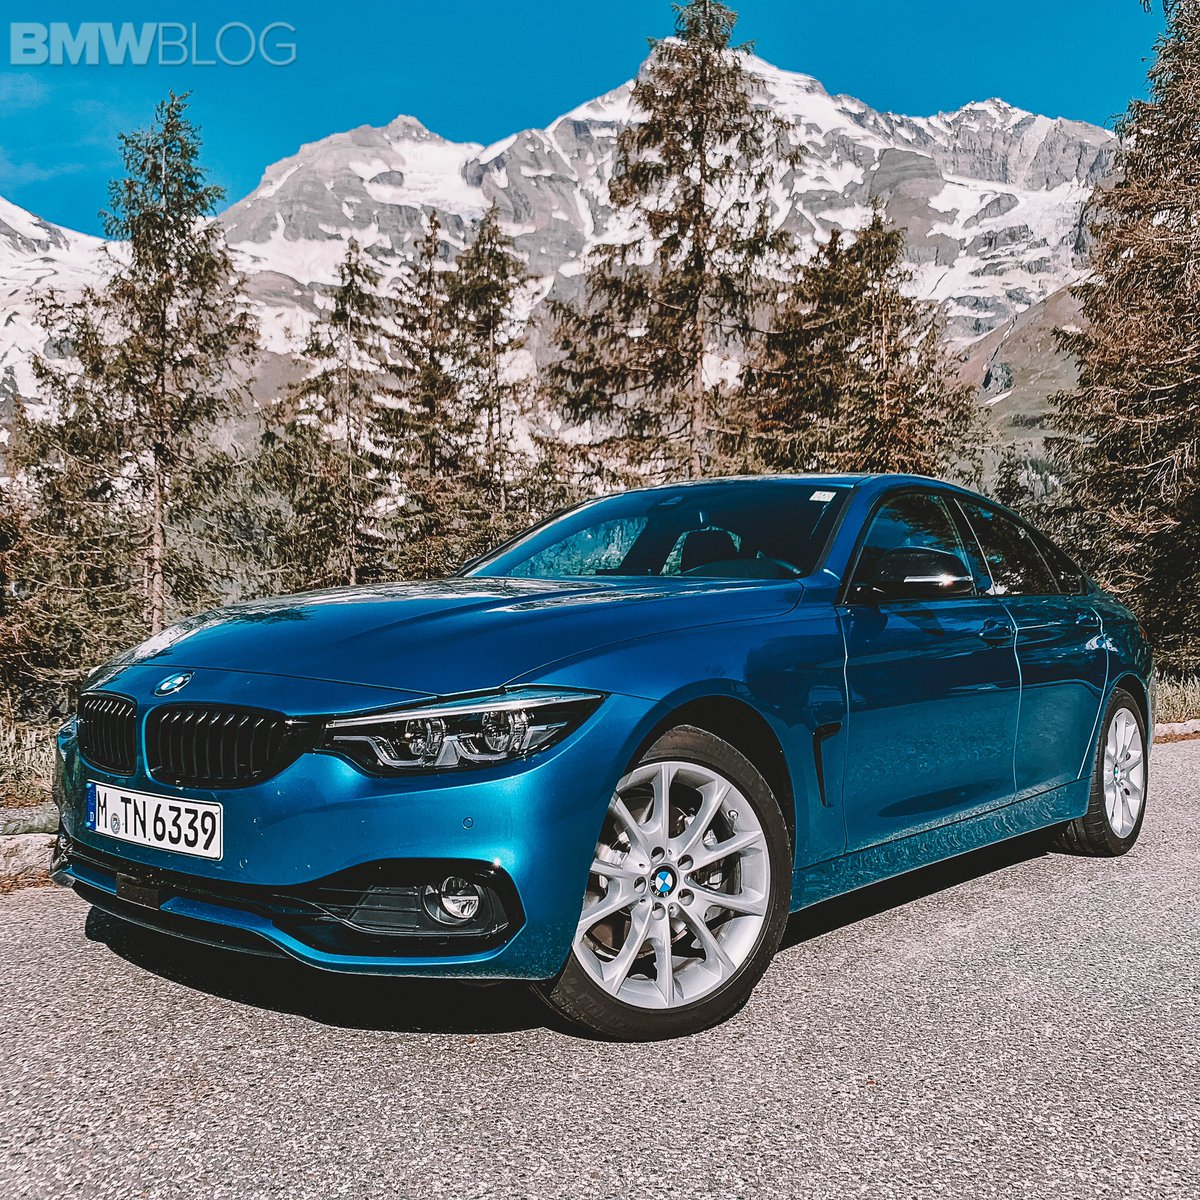 bmw430d hashtag on Twitter